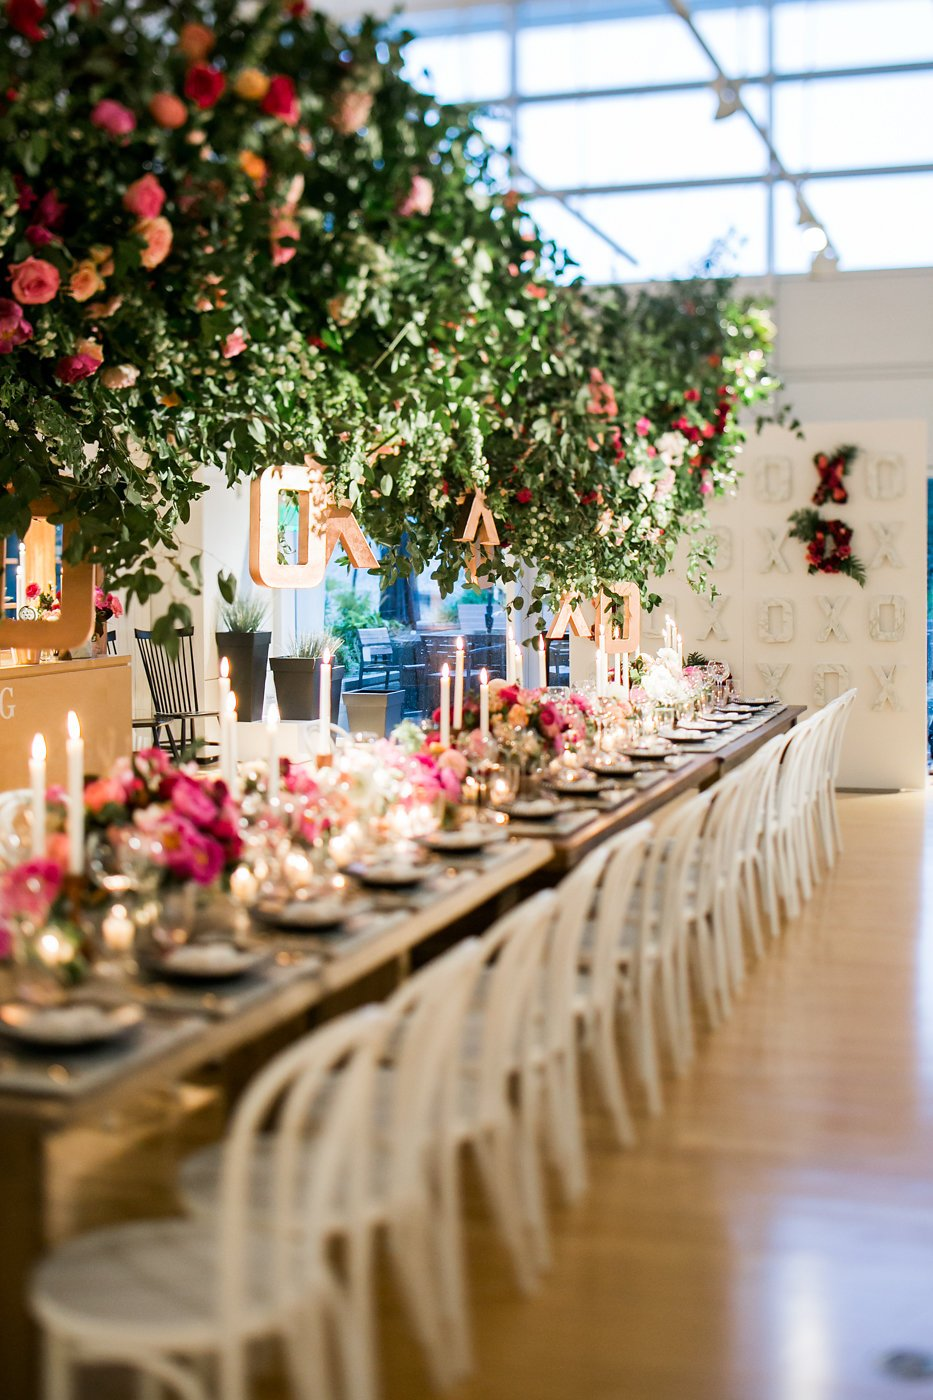 Line of white chairs by Valentine's Day table